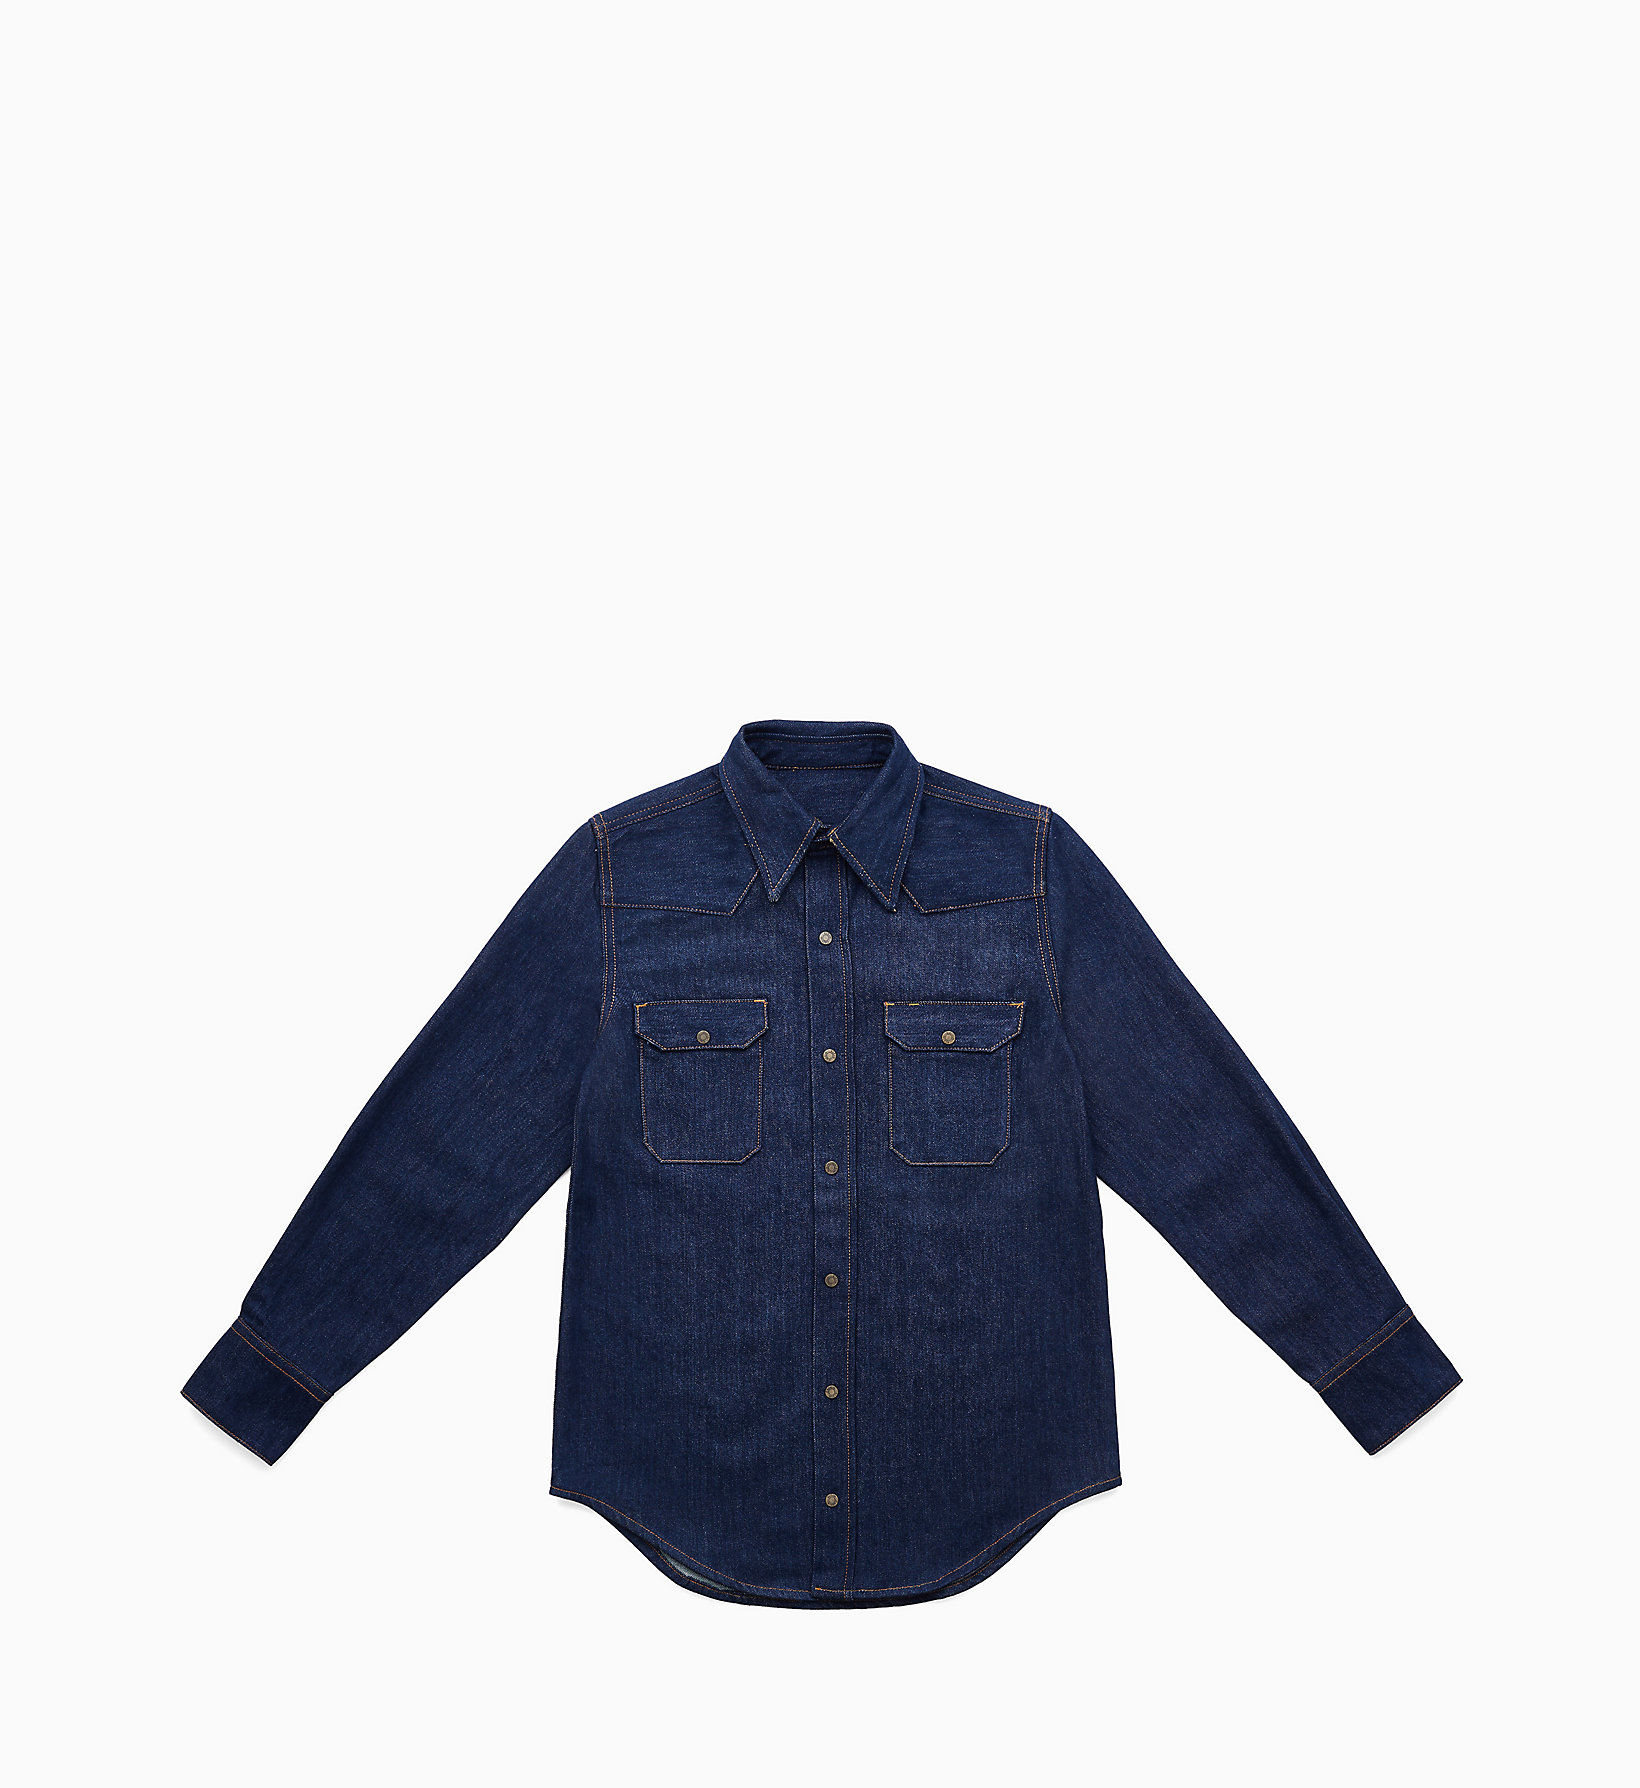 1978 · VIEW ALL  Western Denim Shirt. View all images. -50% x0 f870a4ae0b50